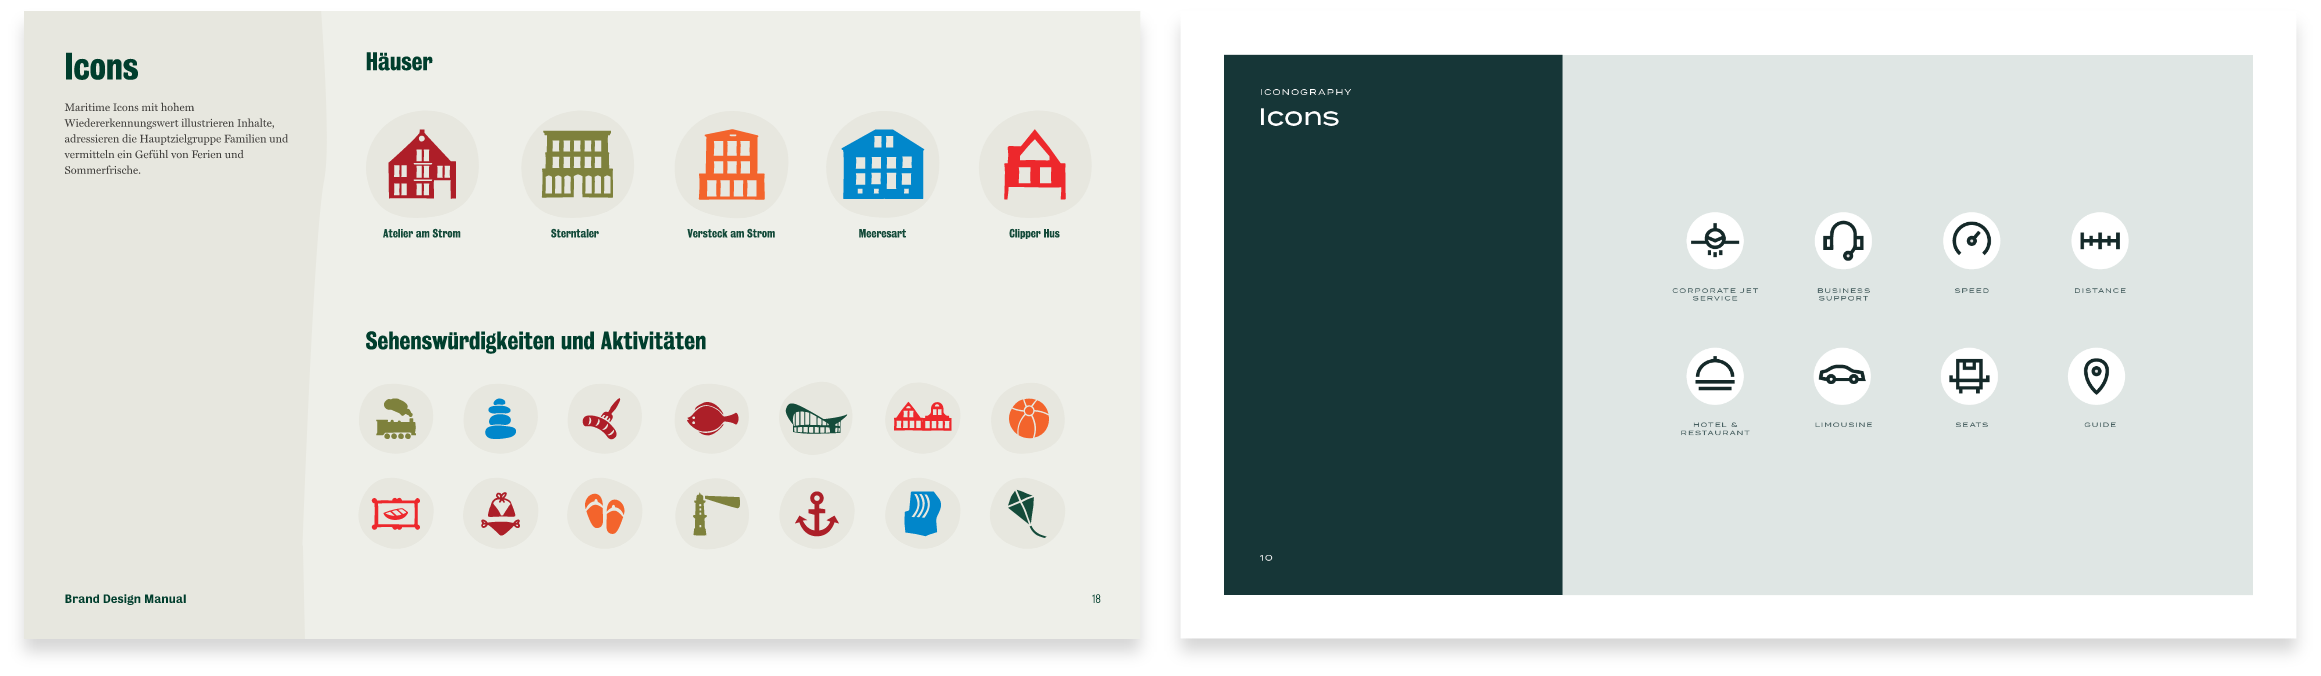 Brand Design Manual Icons